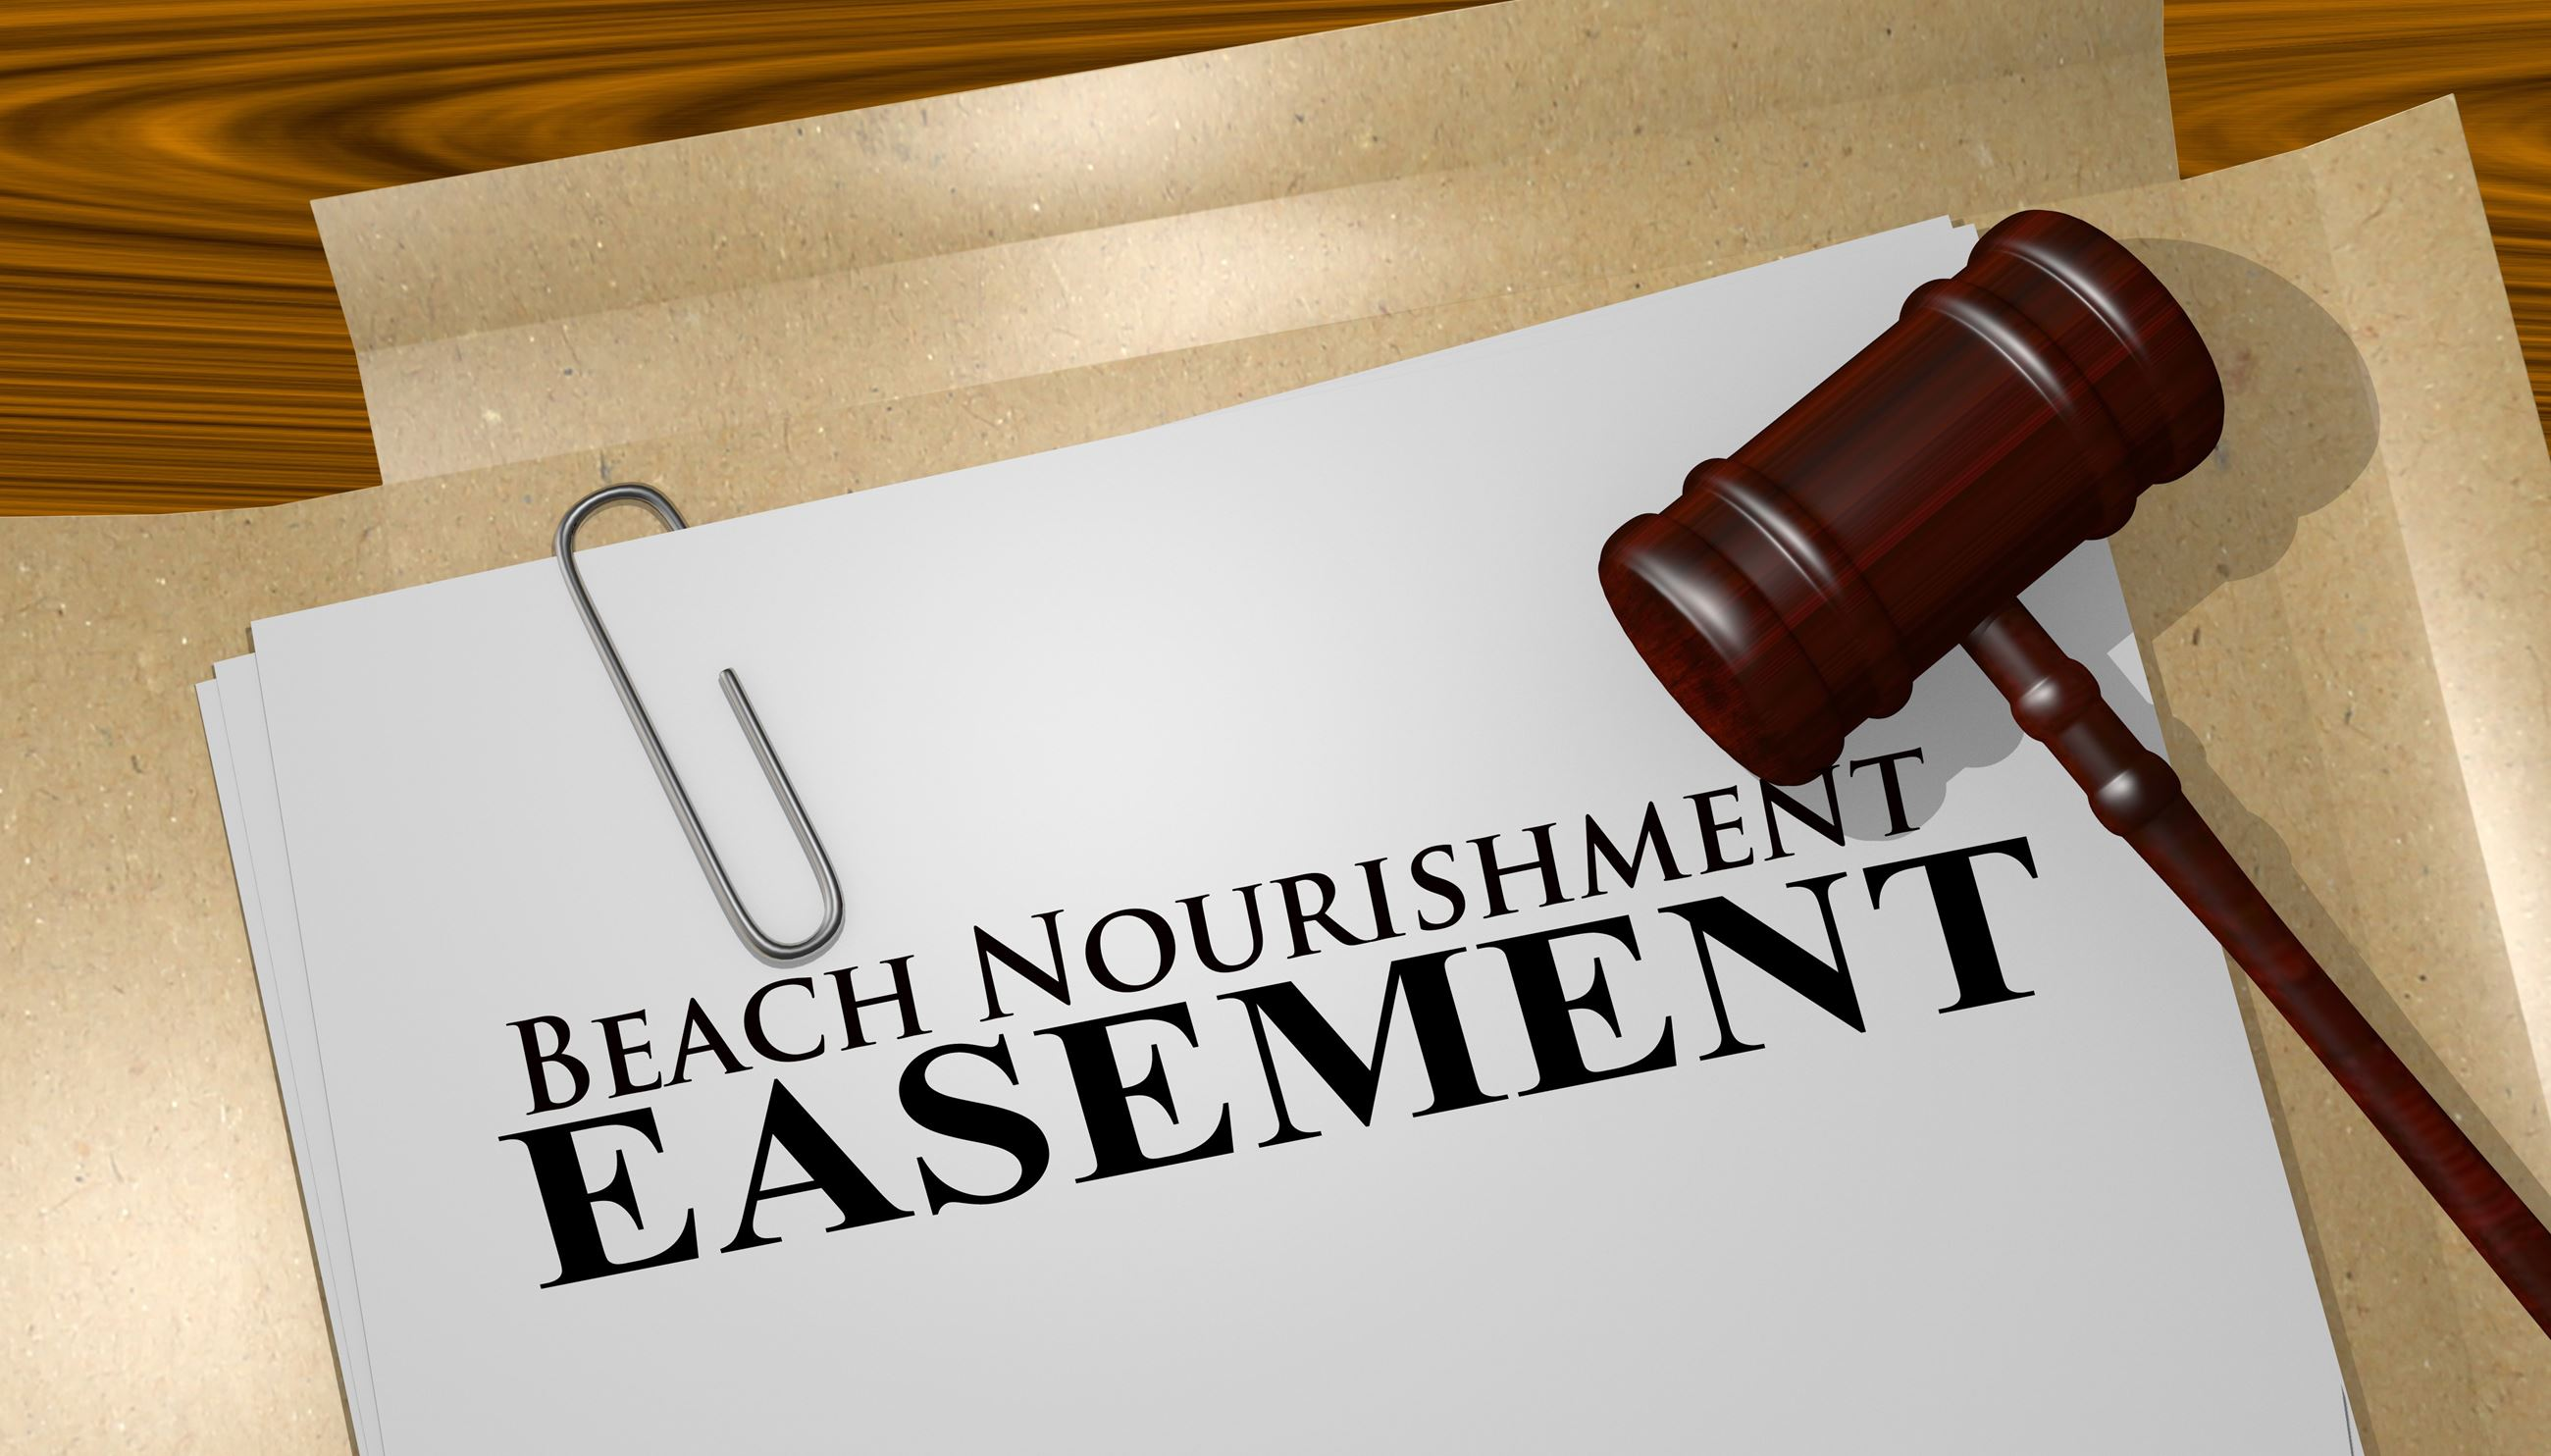 Web Site Image Beach Nourishment Easement 2